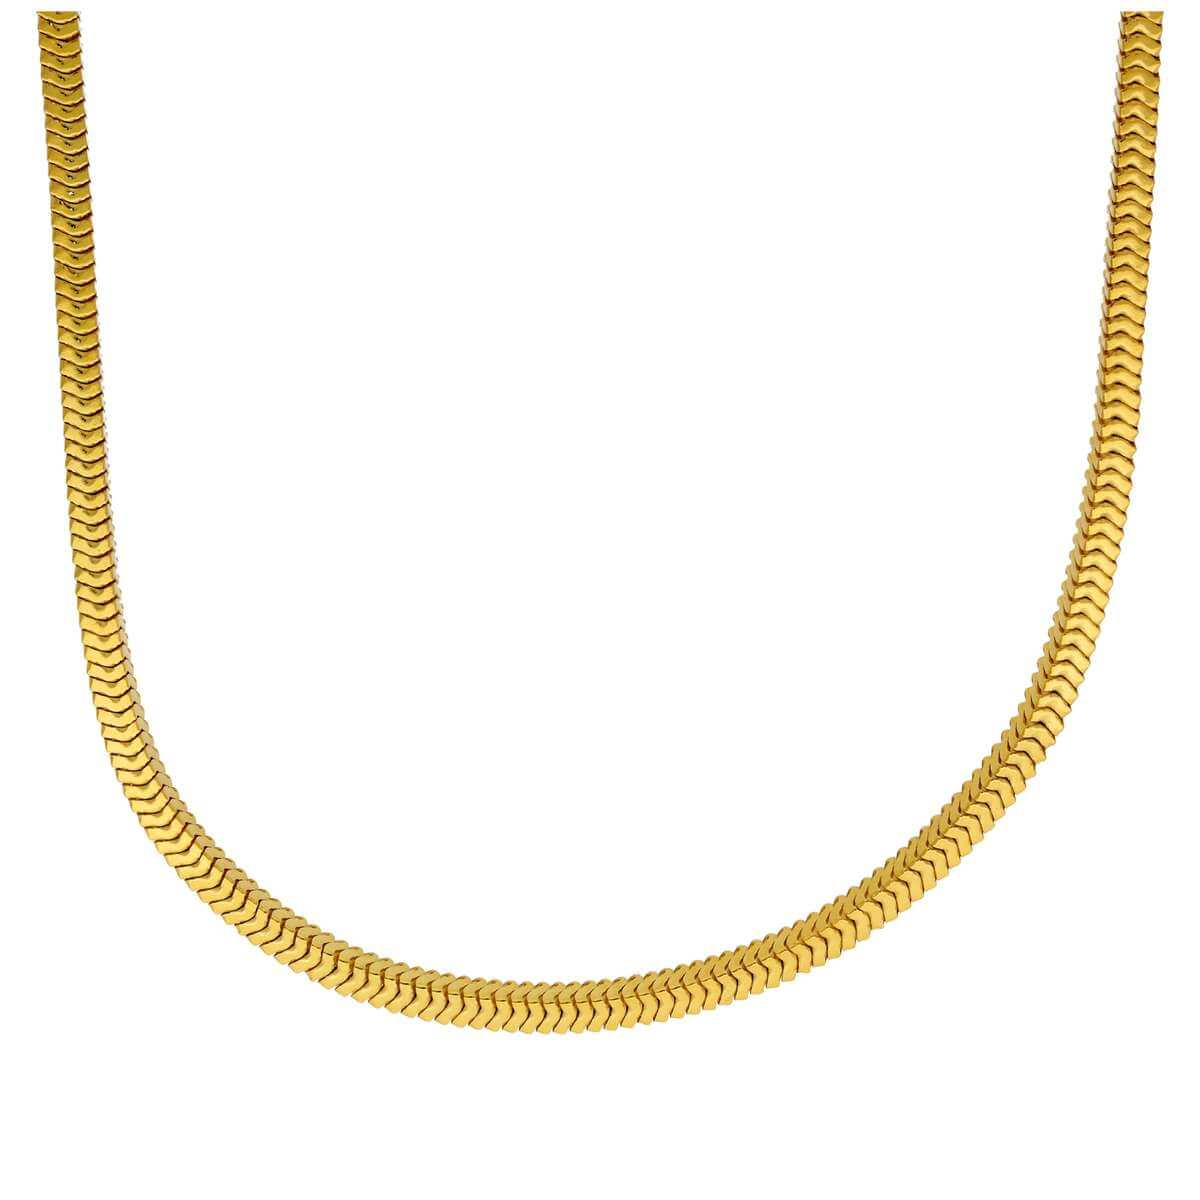 Gold Plated Sterling Silver Square 2mm Snake Necklace 16-18 Inches